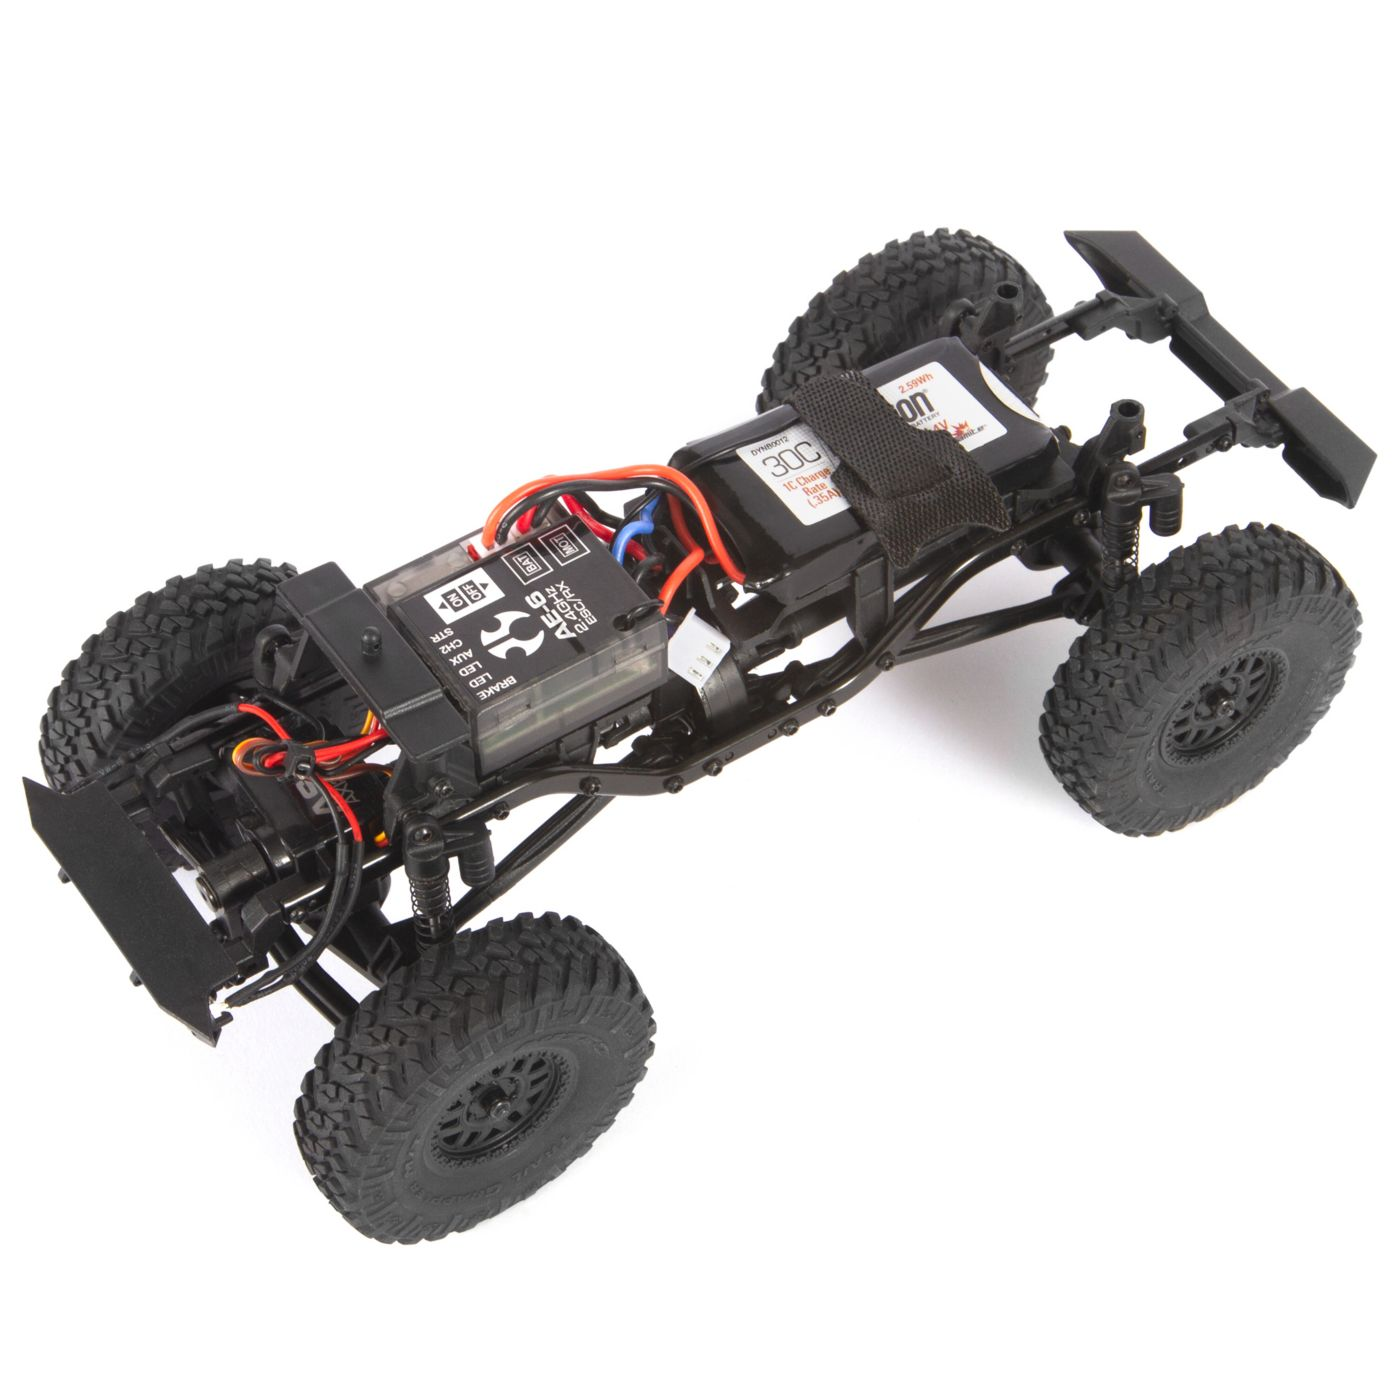 Axial Scx24 Jeep Wrangler 4x4 rtr scaler 1/24 02